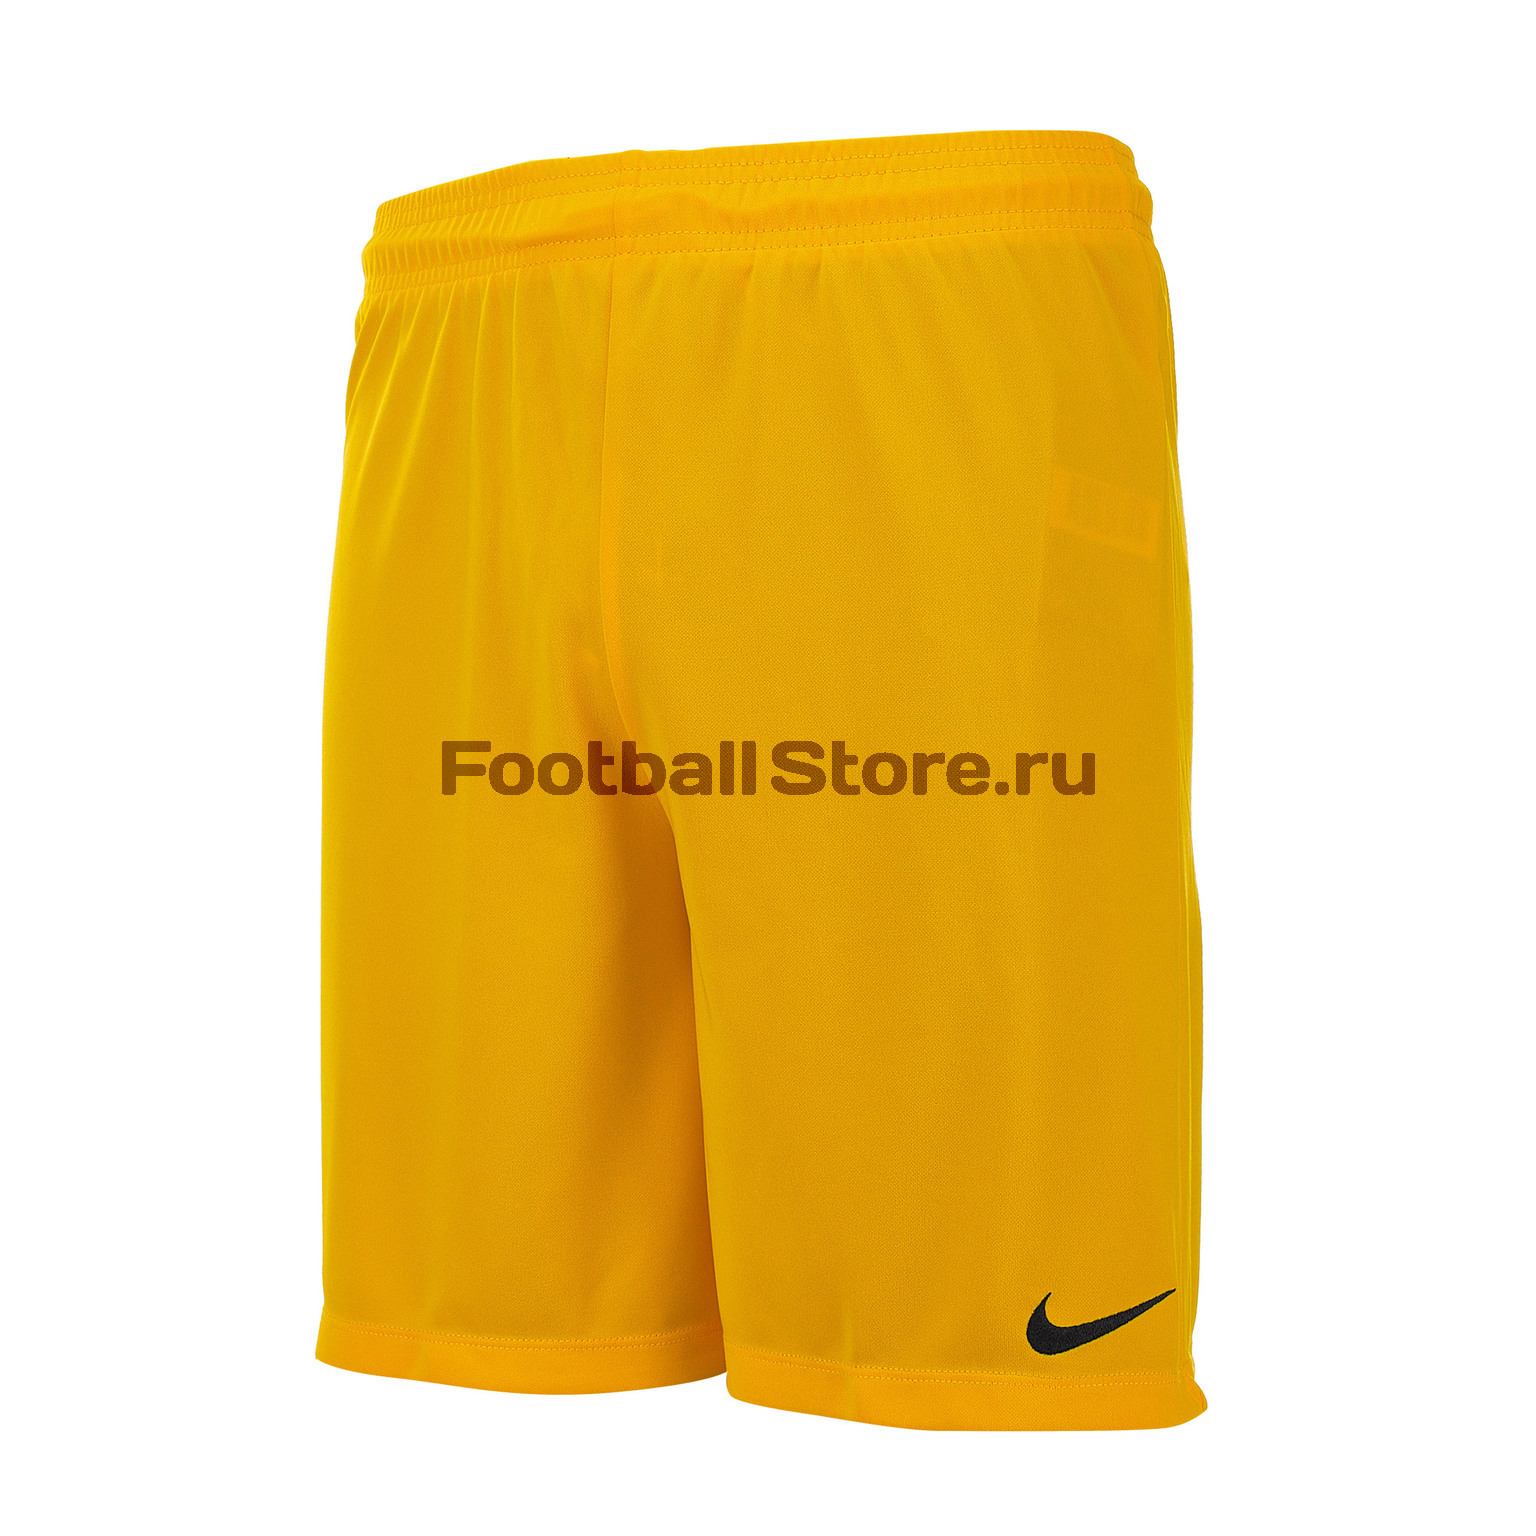 Шорты Nike Boys Park II KNIT Short NB 725988-739